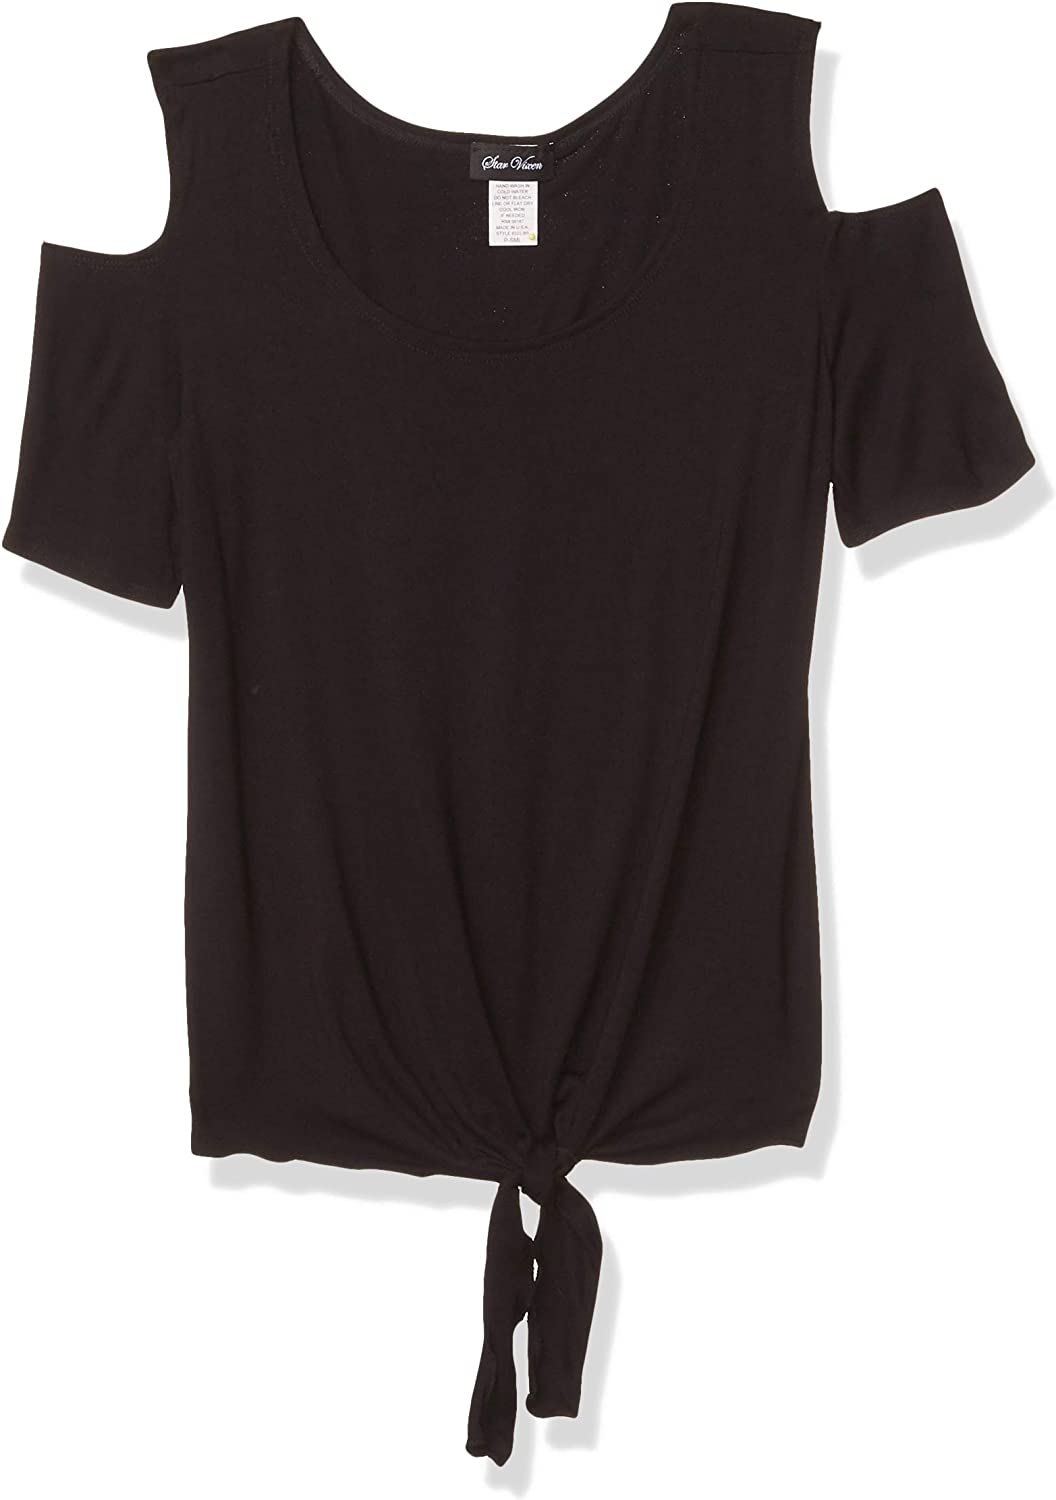 Star Vixen Womens Petite Short Sleeve Classic Tiefront Brushed Knit Top